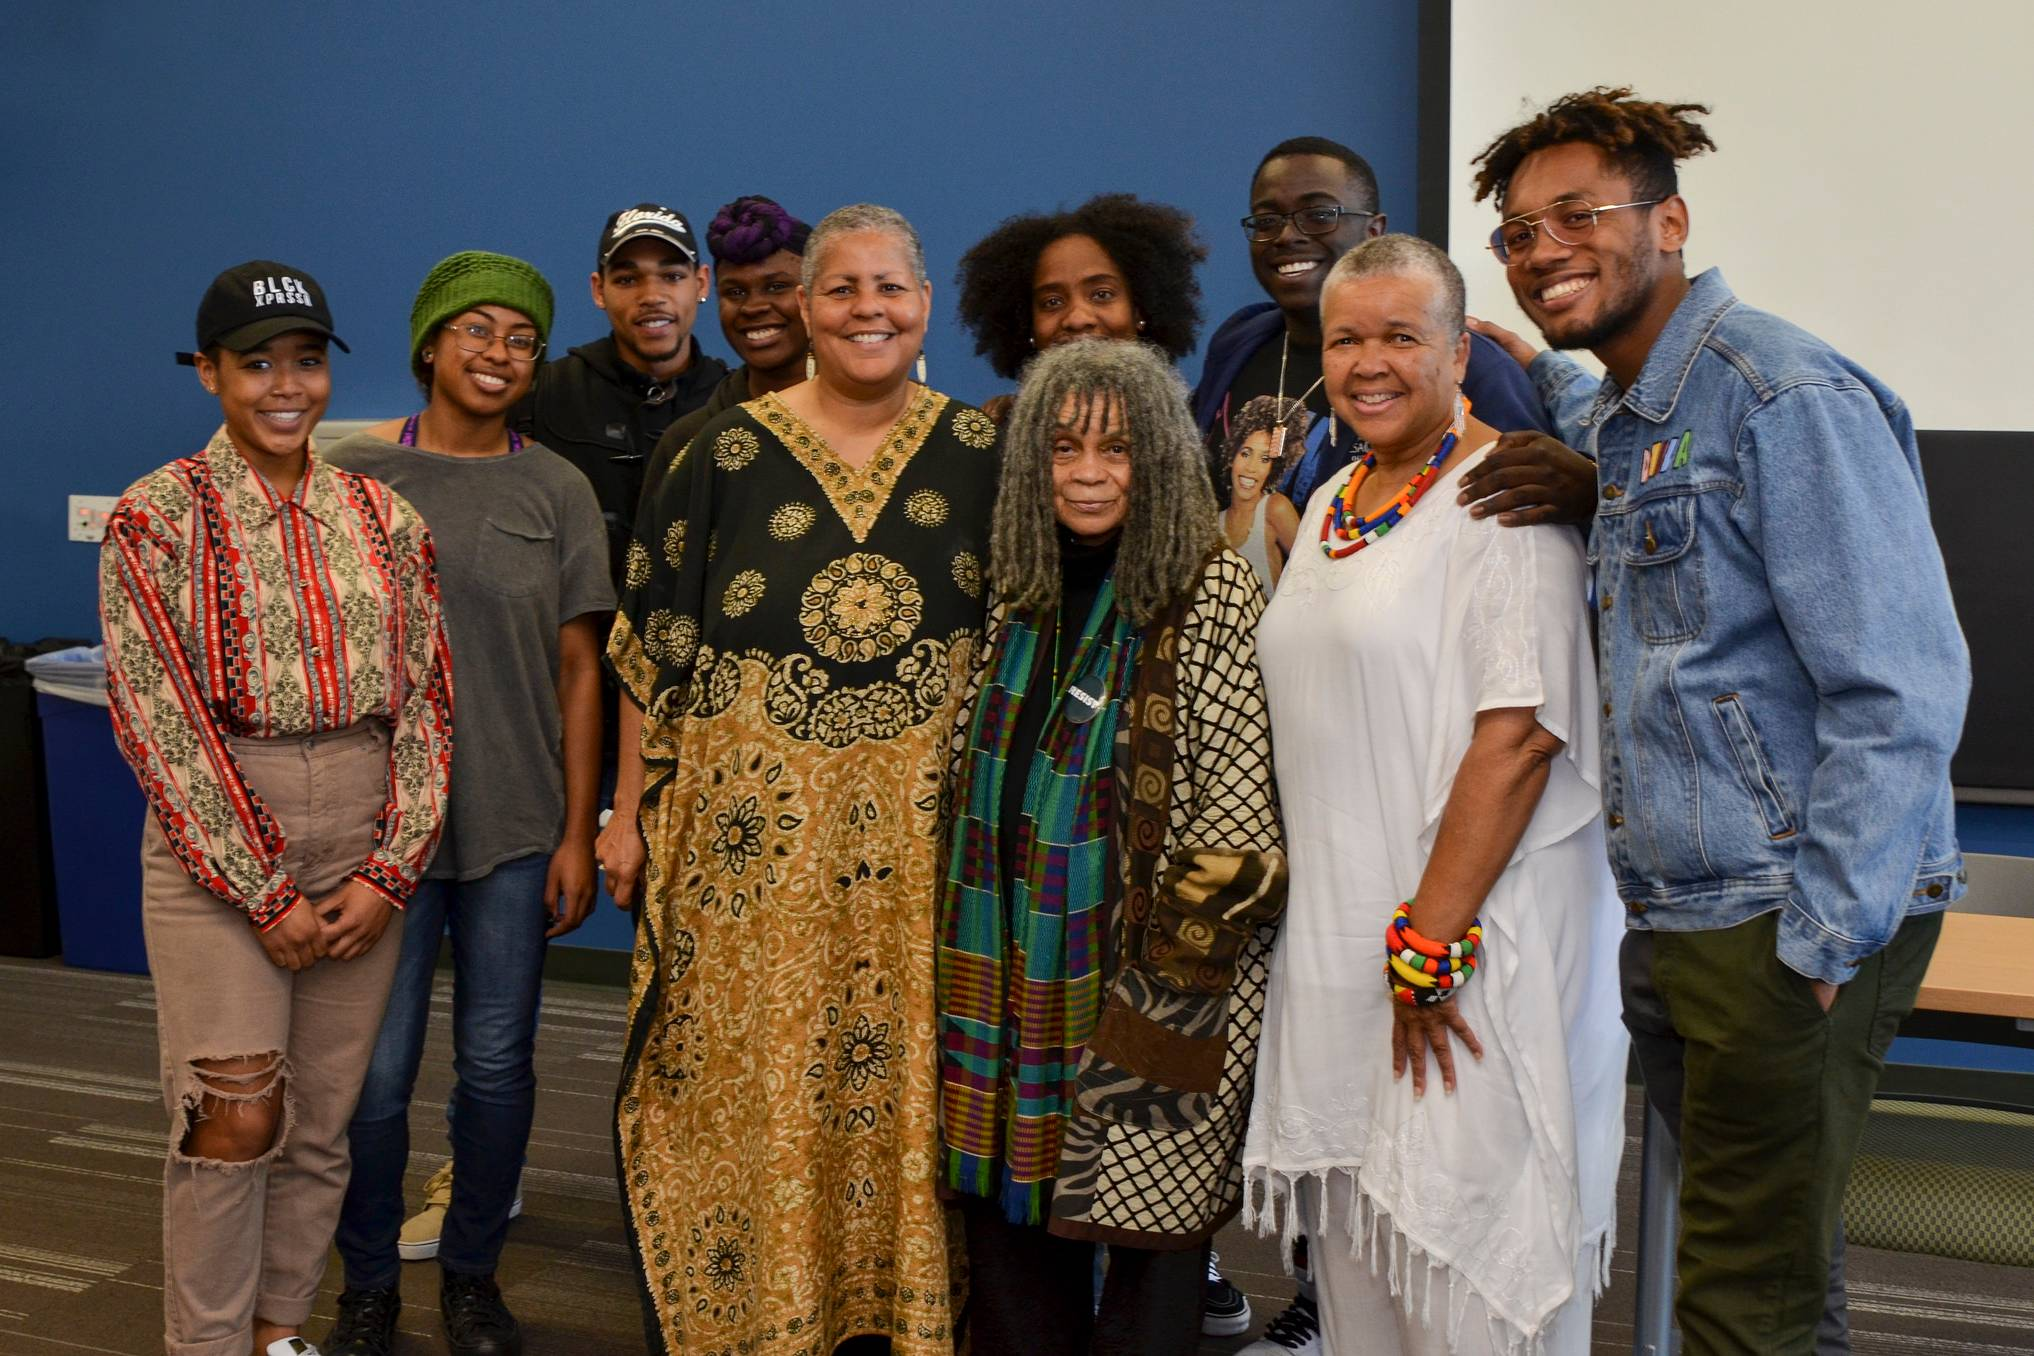 African American poet, professor and activist Dr. Sonia Sanchez spoke to a full room at San Diego Mesa College on Feb. 23 in honor of Black History Month.